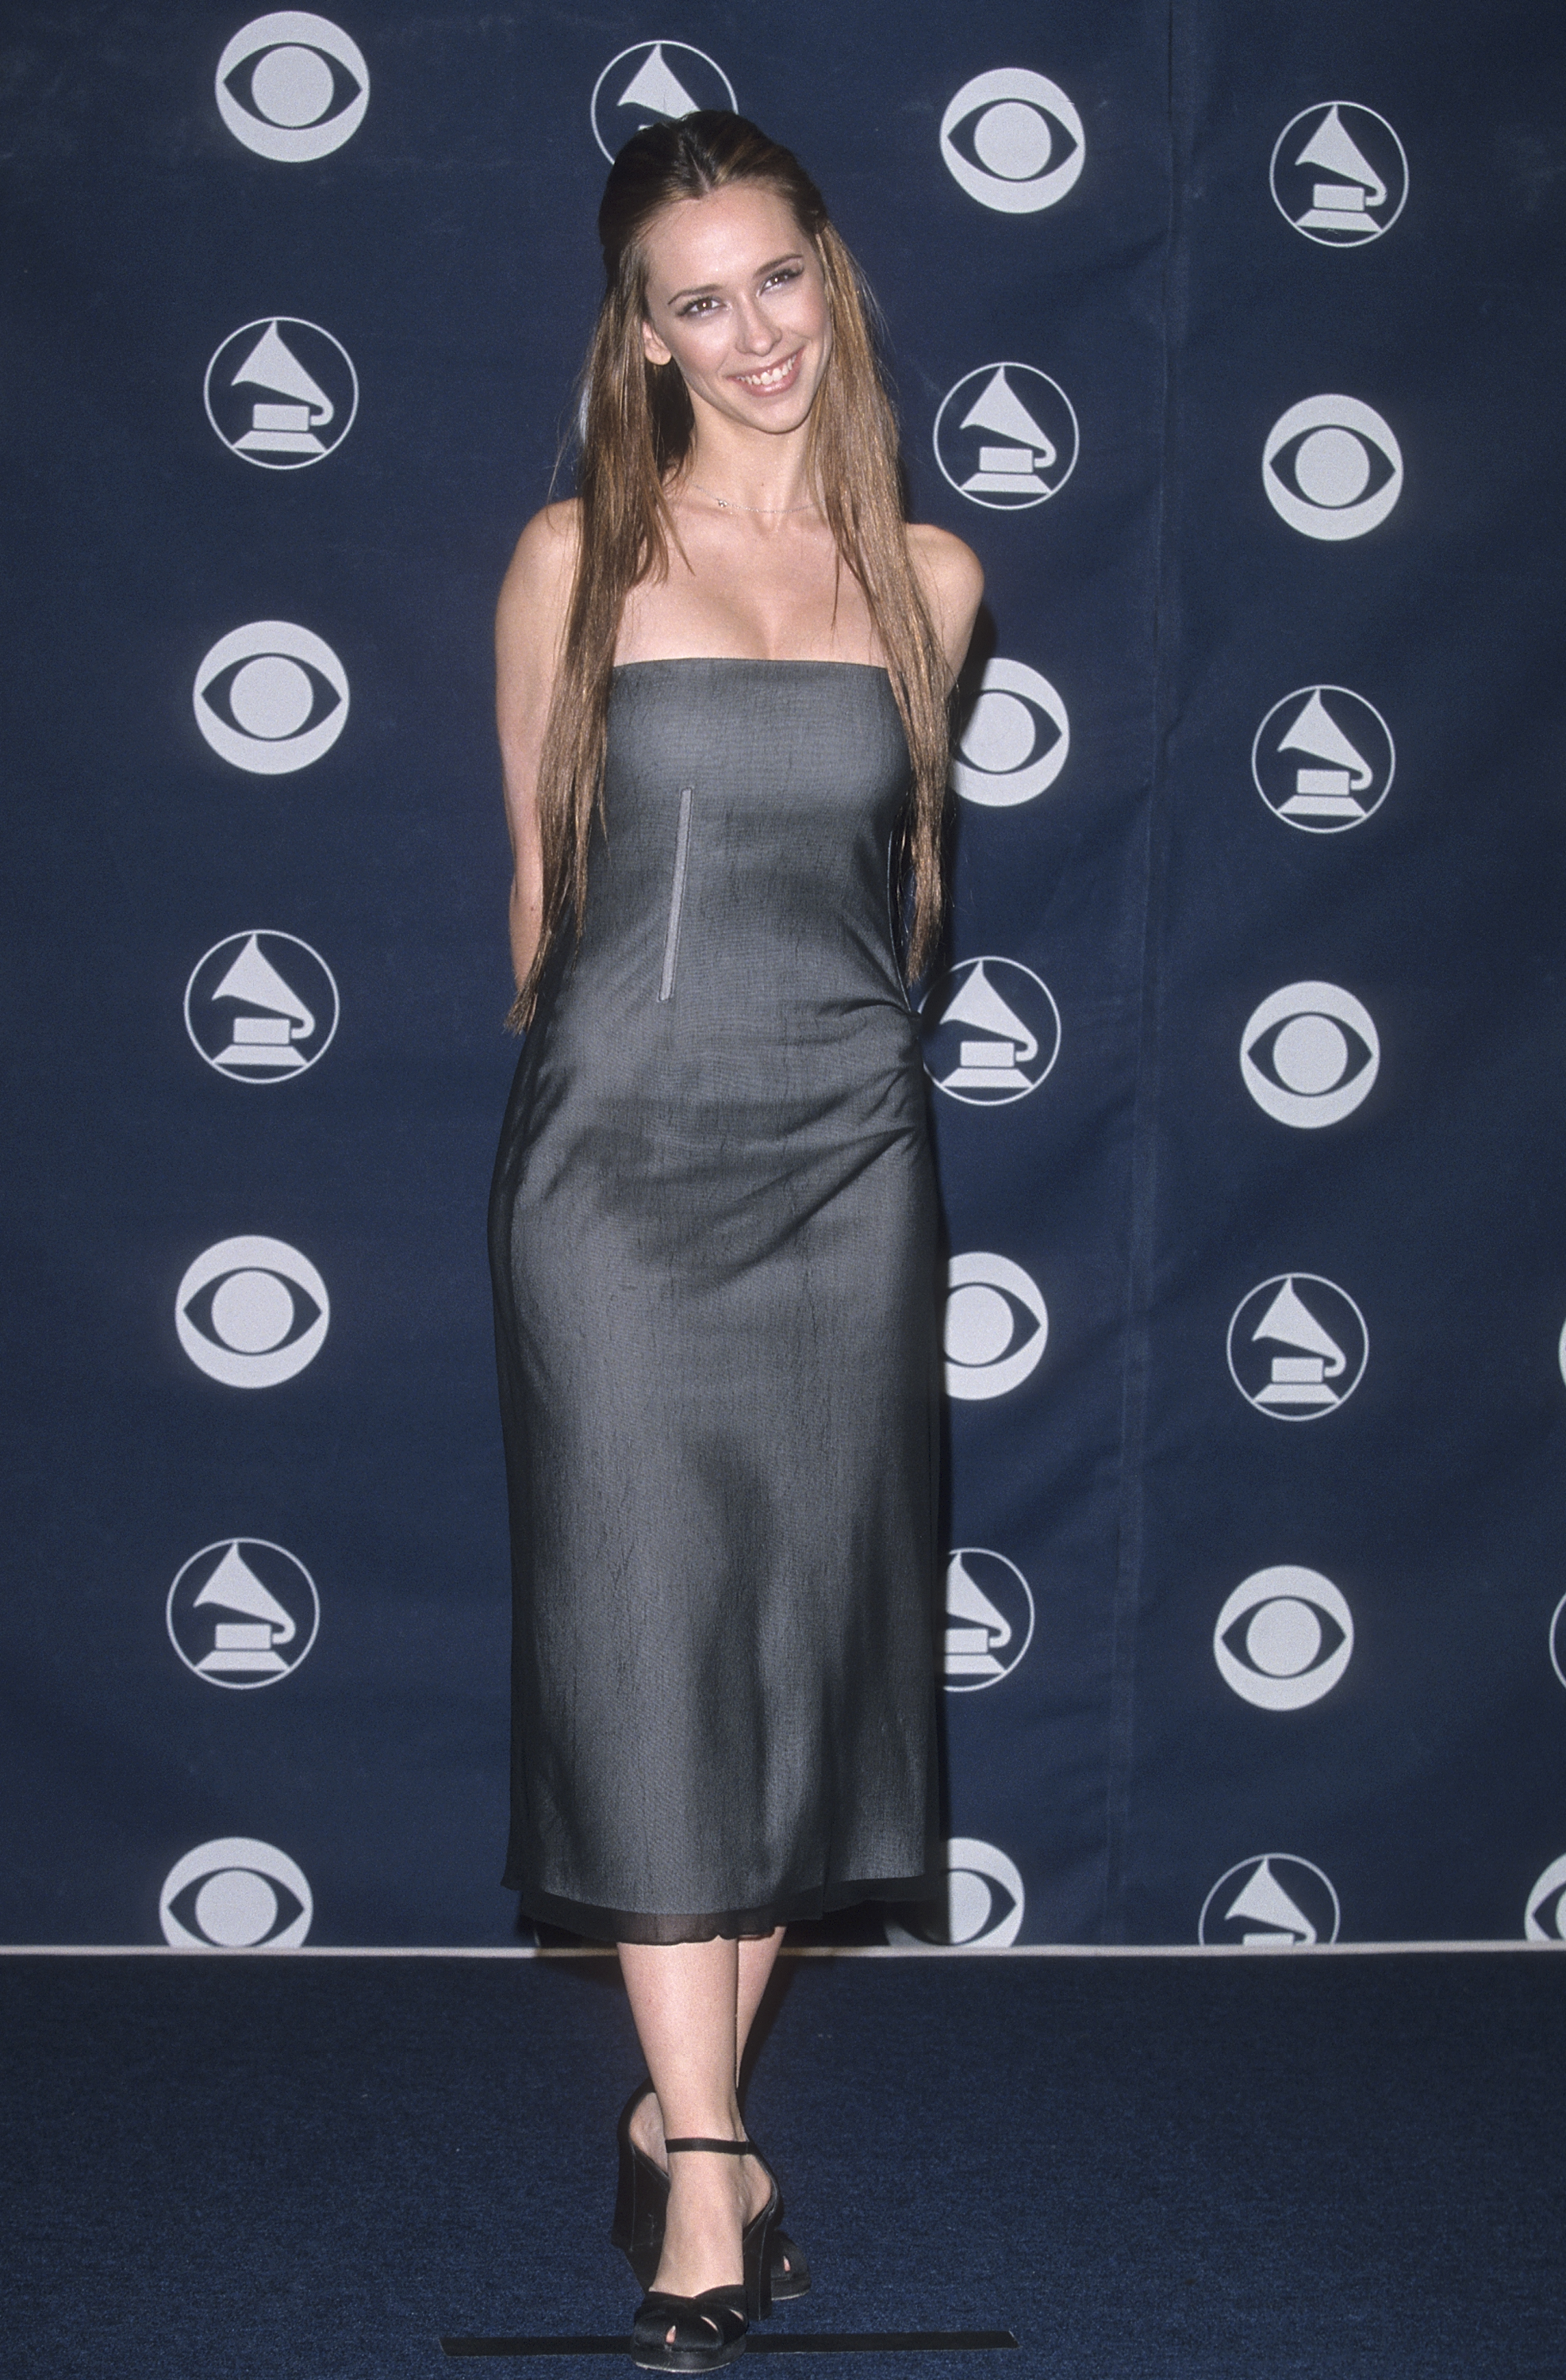 Jennifer Love Hewitt poses at the 41st annual Grammy Awards in Los Angeles on Feb. 24, 1999.